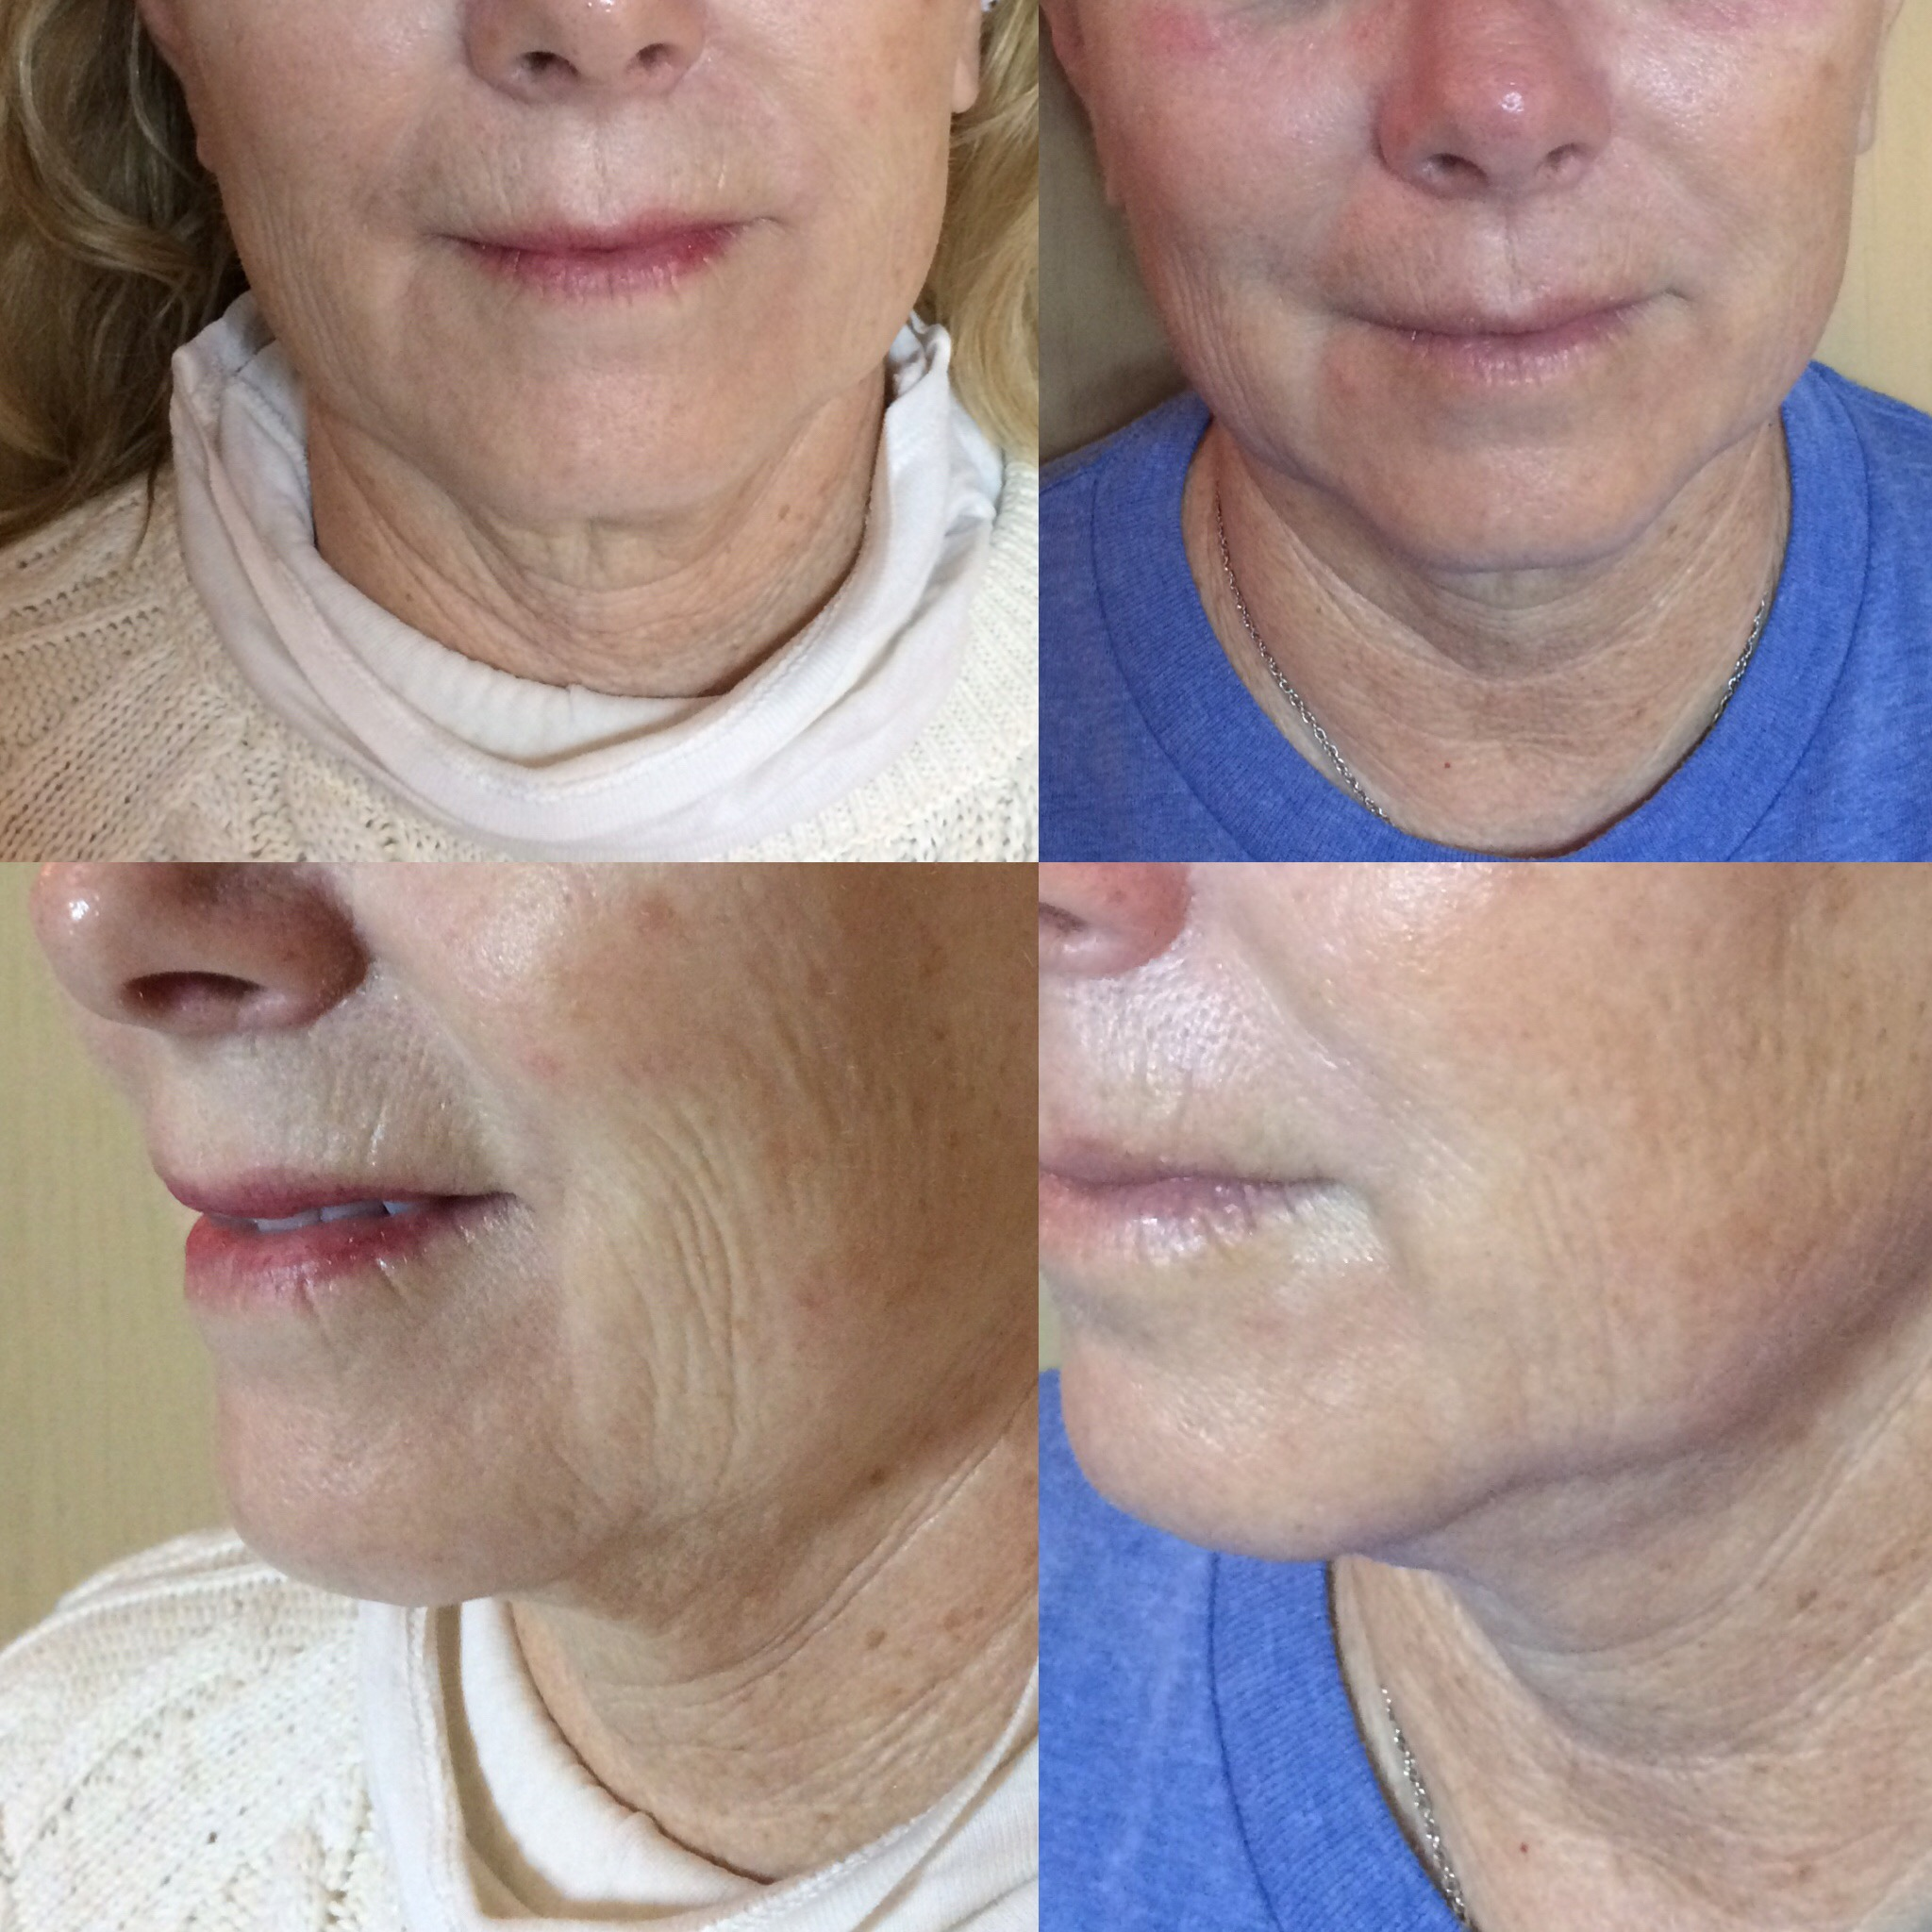 This client had a series of 10 TAMA microcurrent treatments spaced one week apart and used Osmosis skincare for her home care regimen.